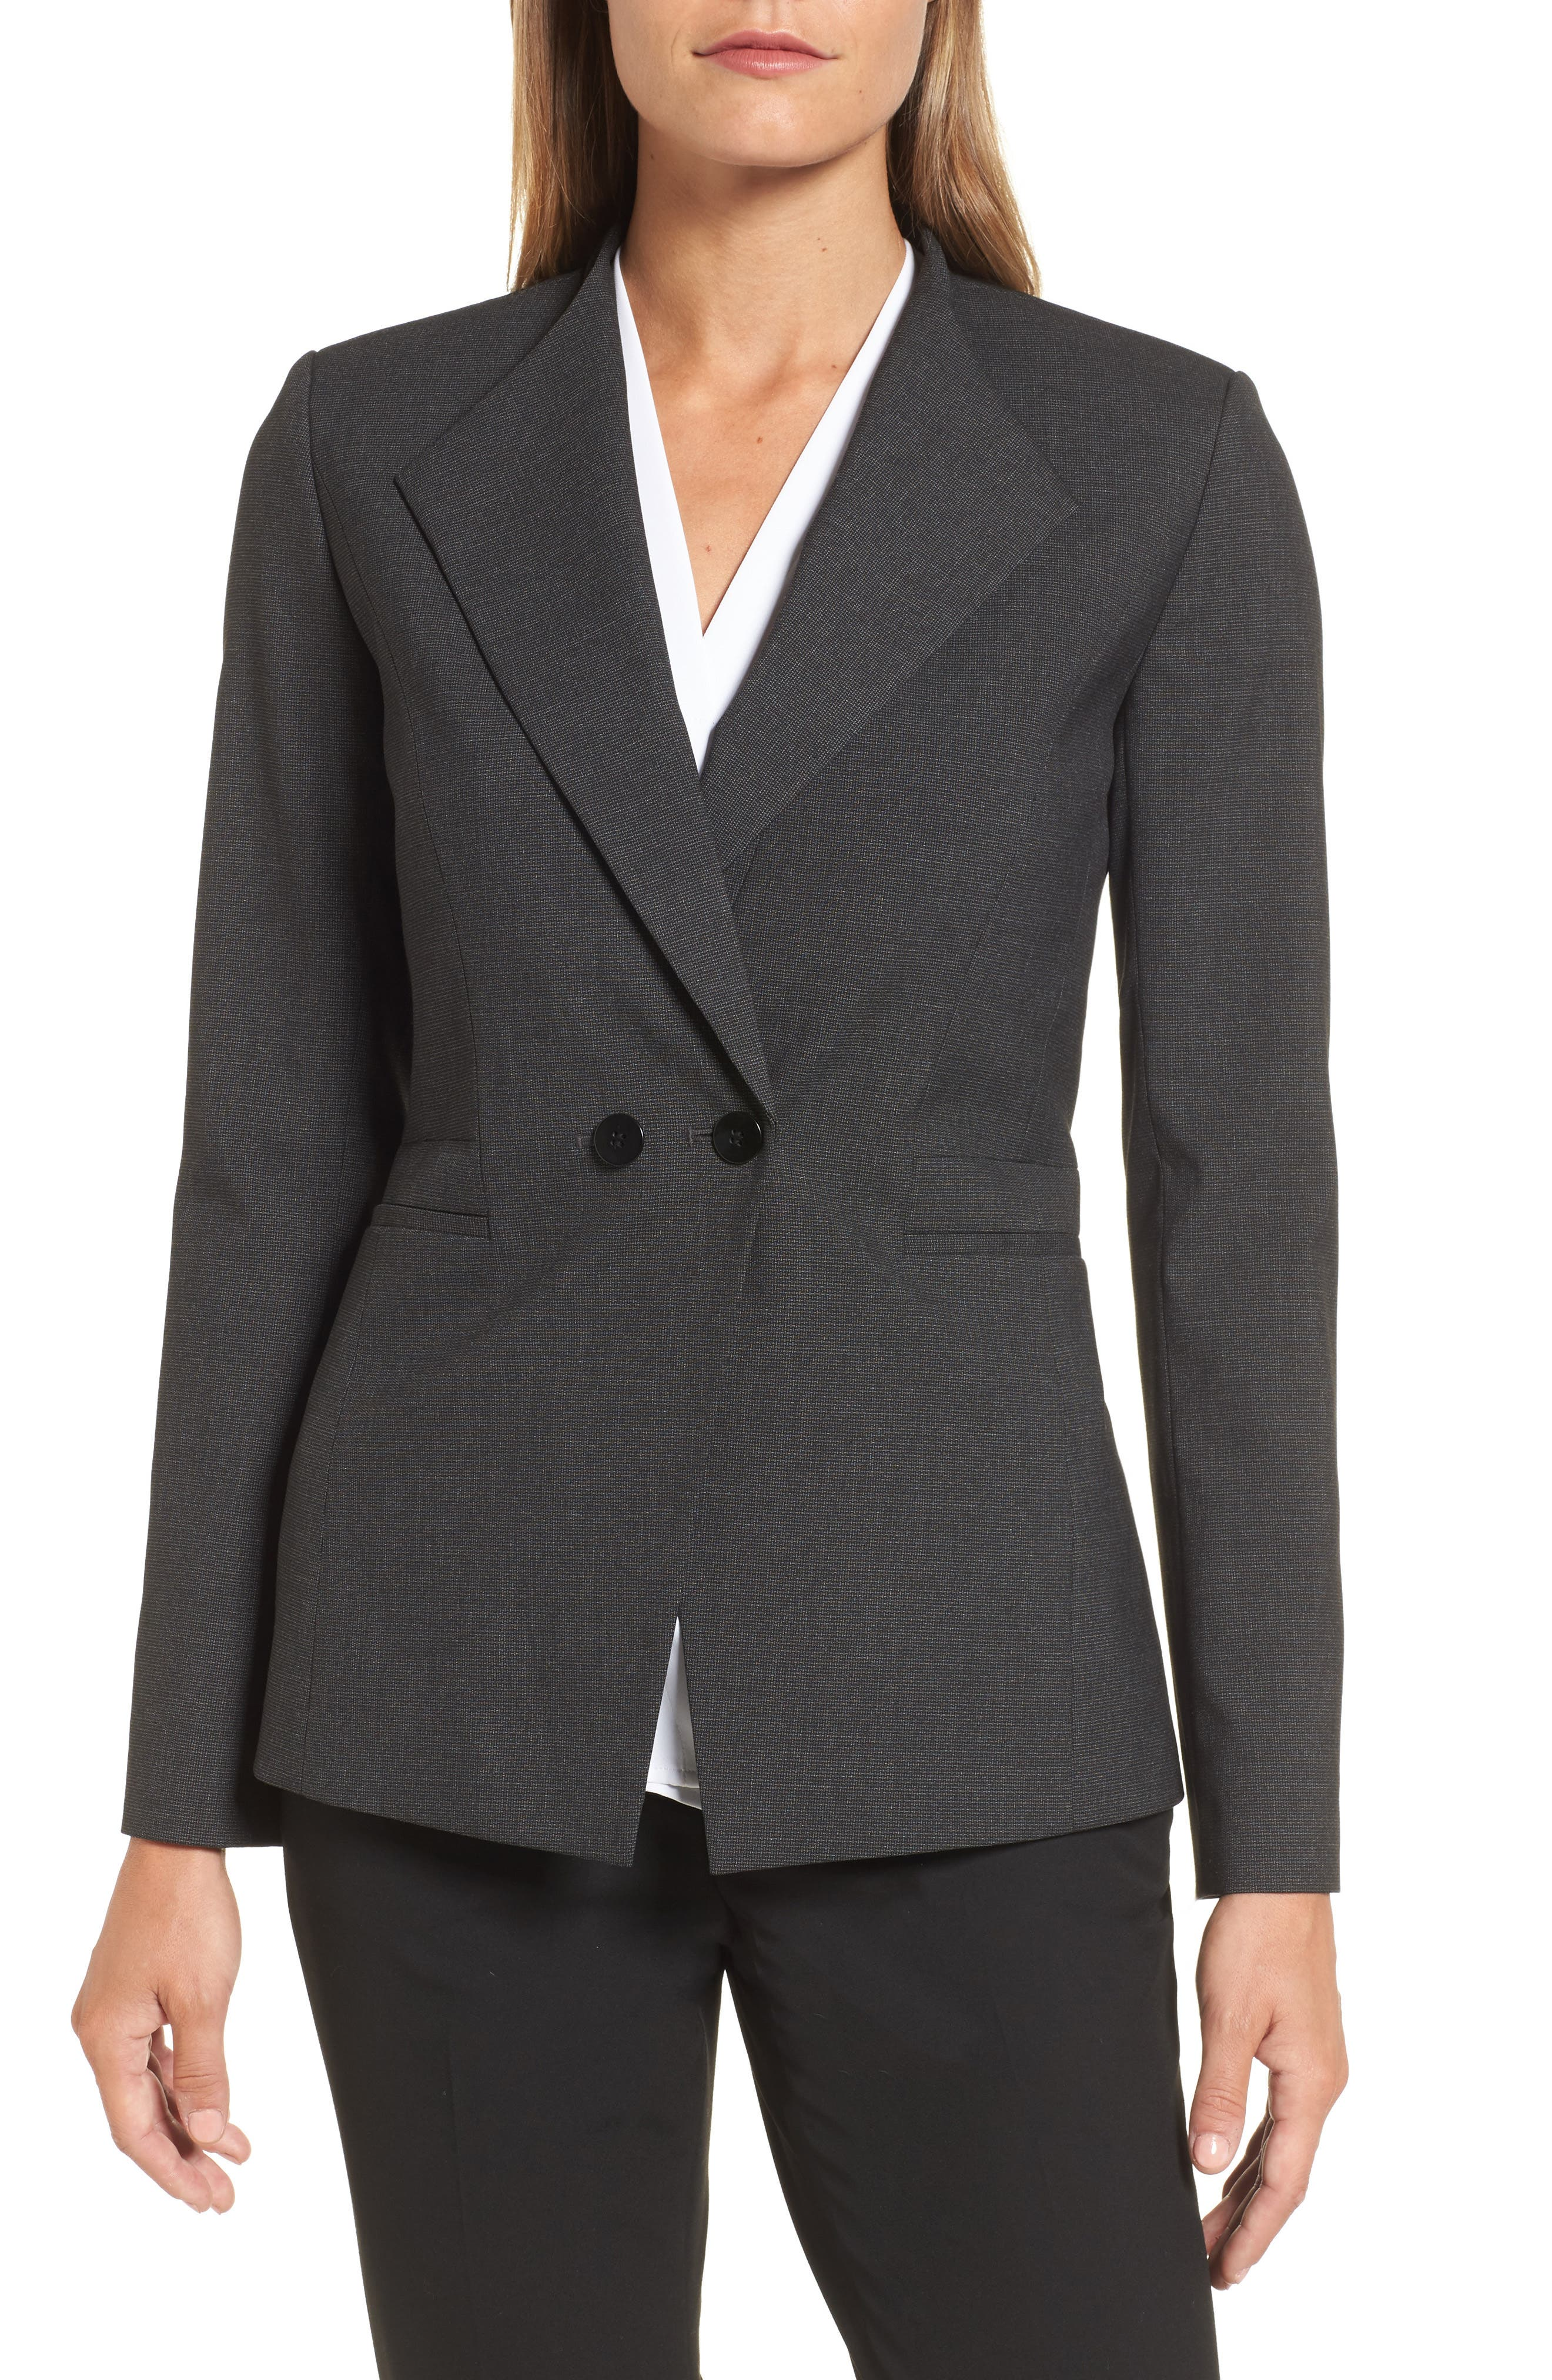 Emerson Rose Double Breasted Suit Jacket